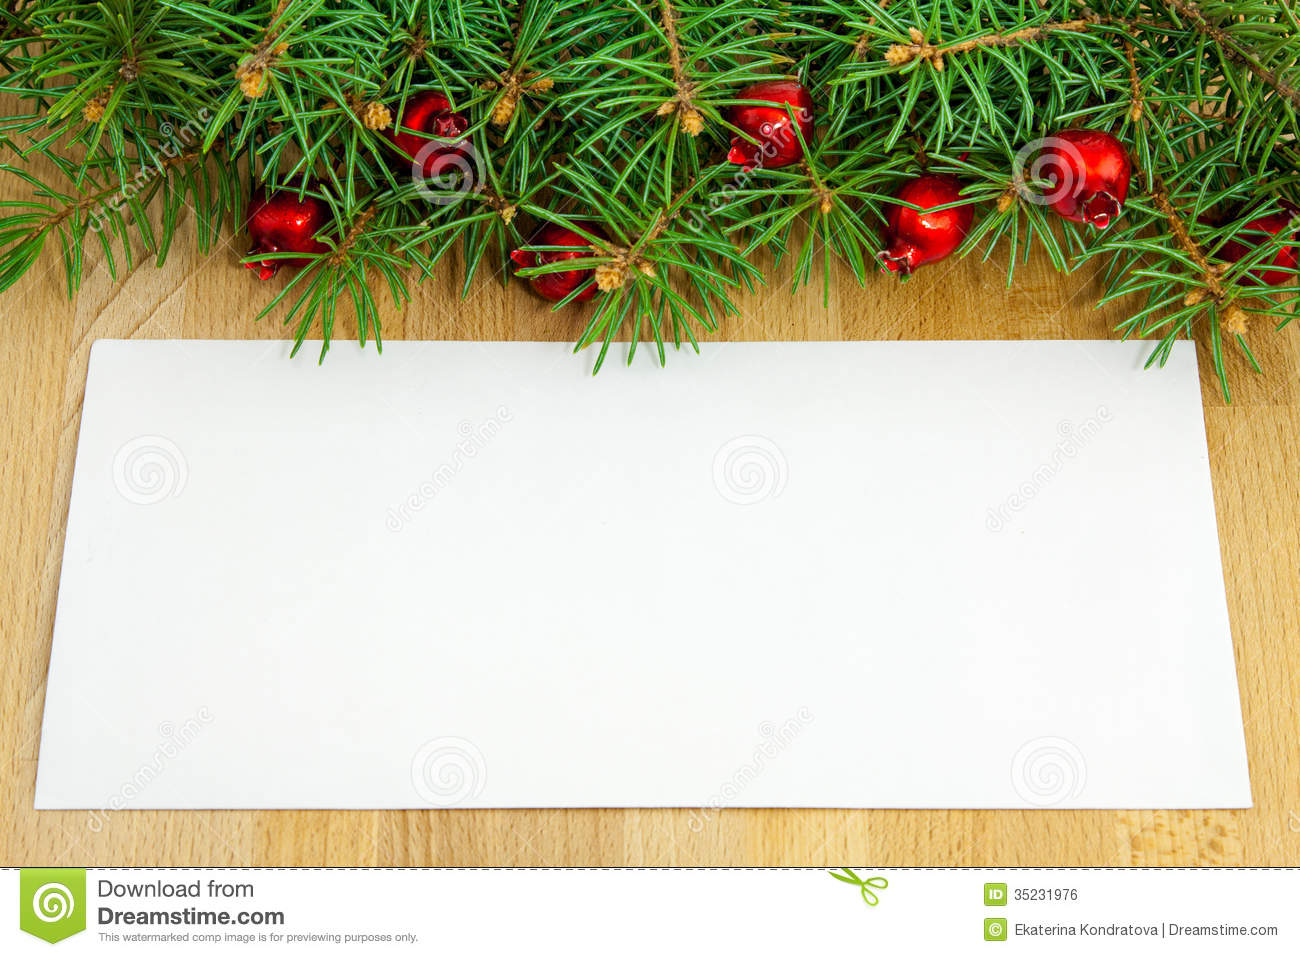 Christmas Border With Red Berries And Toys Royalty Free Stock ...